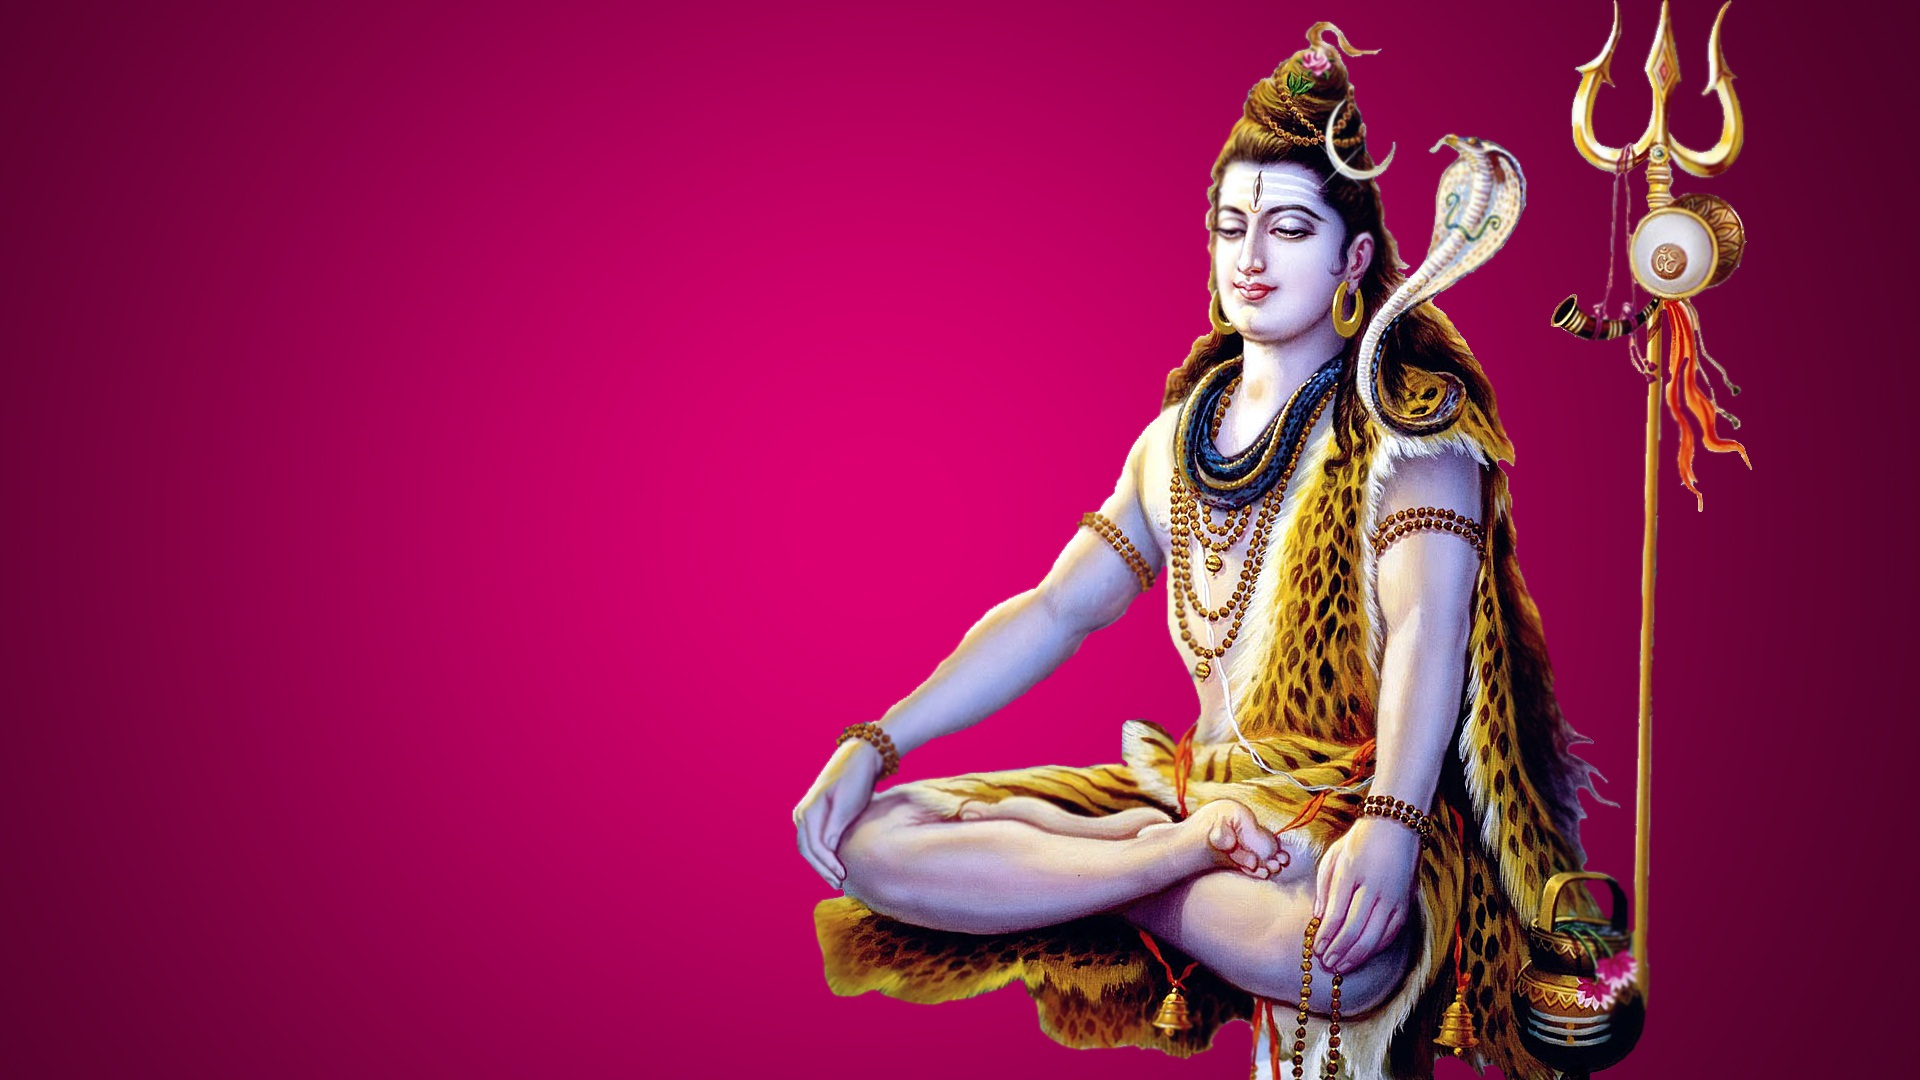 Lord Shiva Full Hd Wallpaper Beautiful PIC MCH083164